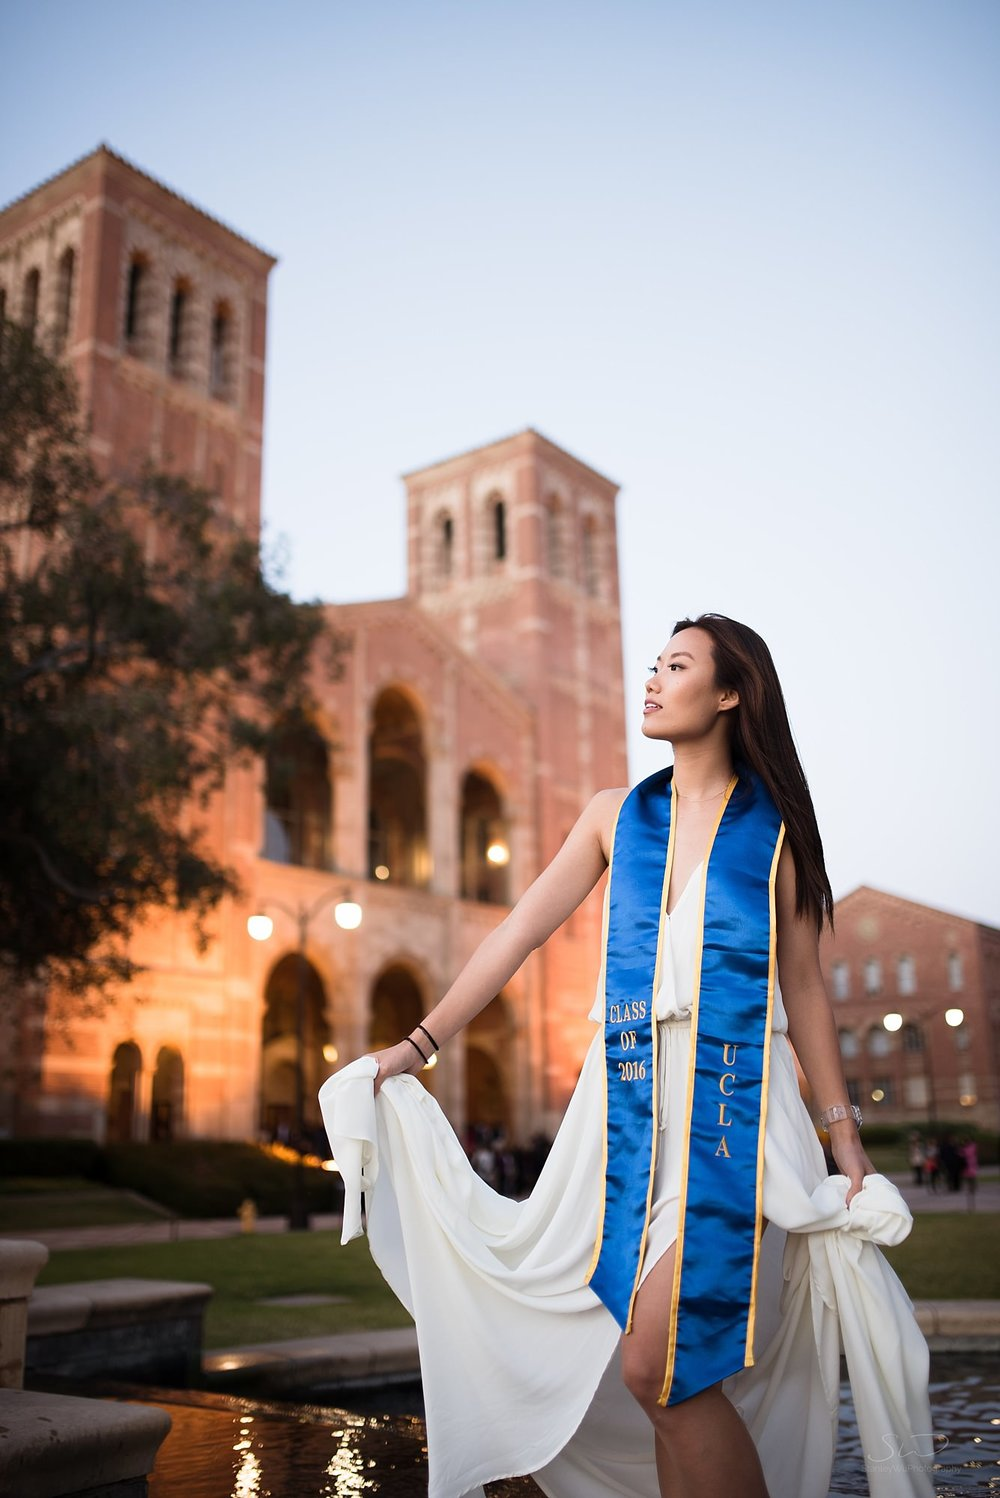 los angeles graduation senior portrait asian girl with white dress at ucla in shapiro fountain in front of royce hall